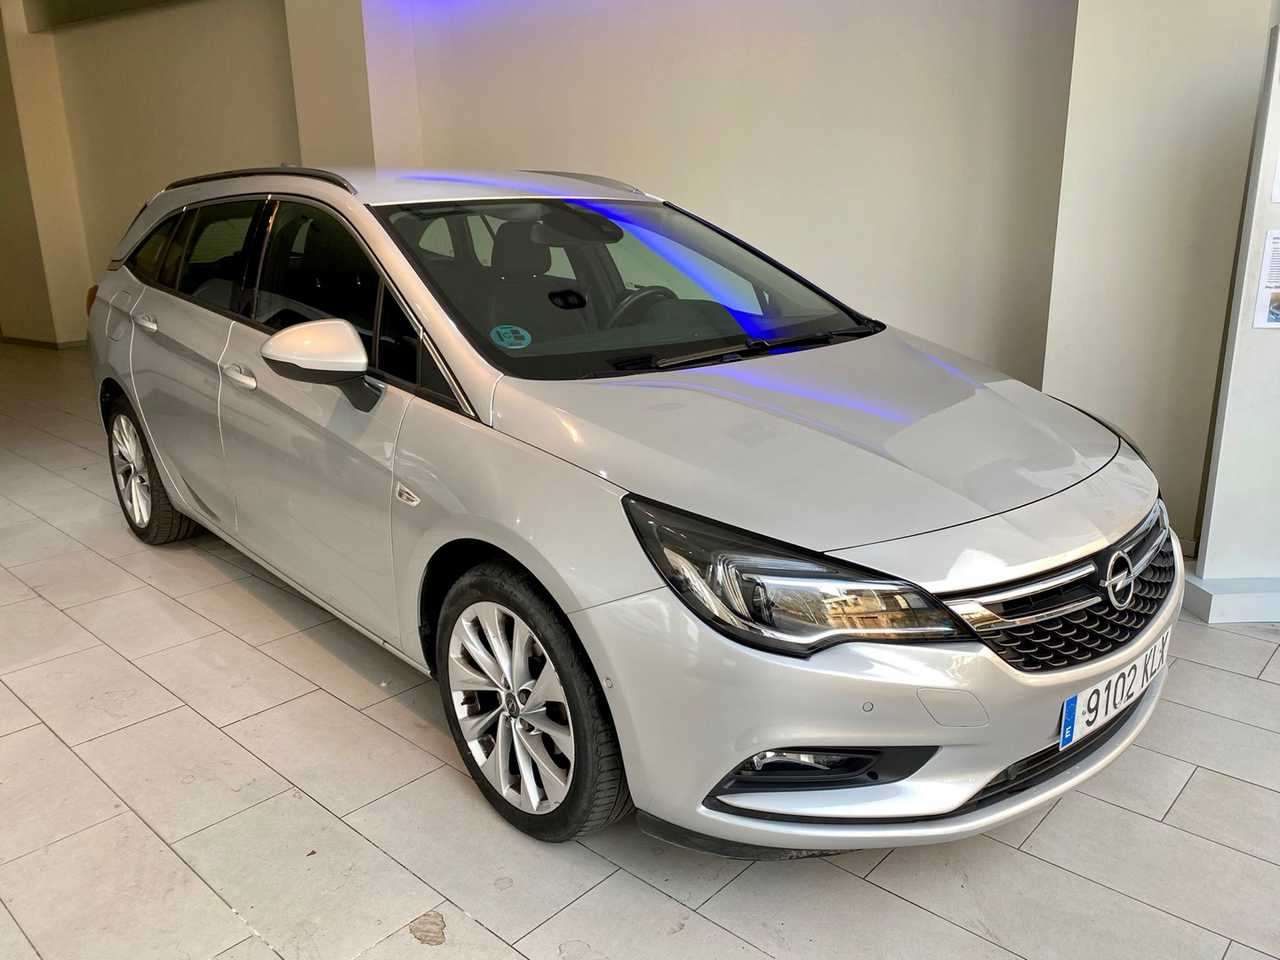 Opel Astra Sports Tourer  Excellence 1.4T Gasolina 150CV manual   - Foto 1